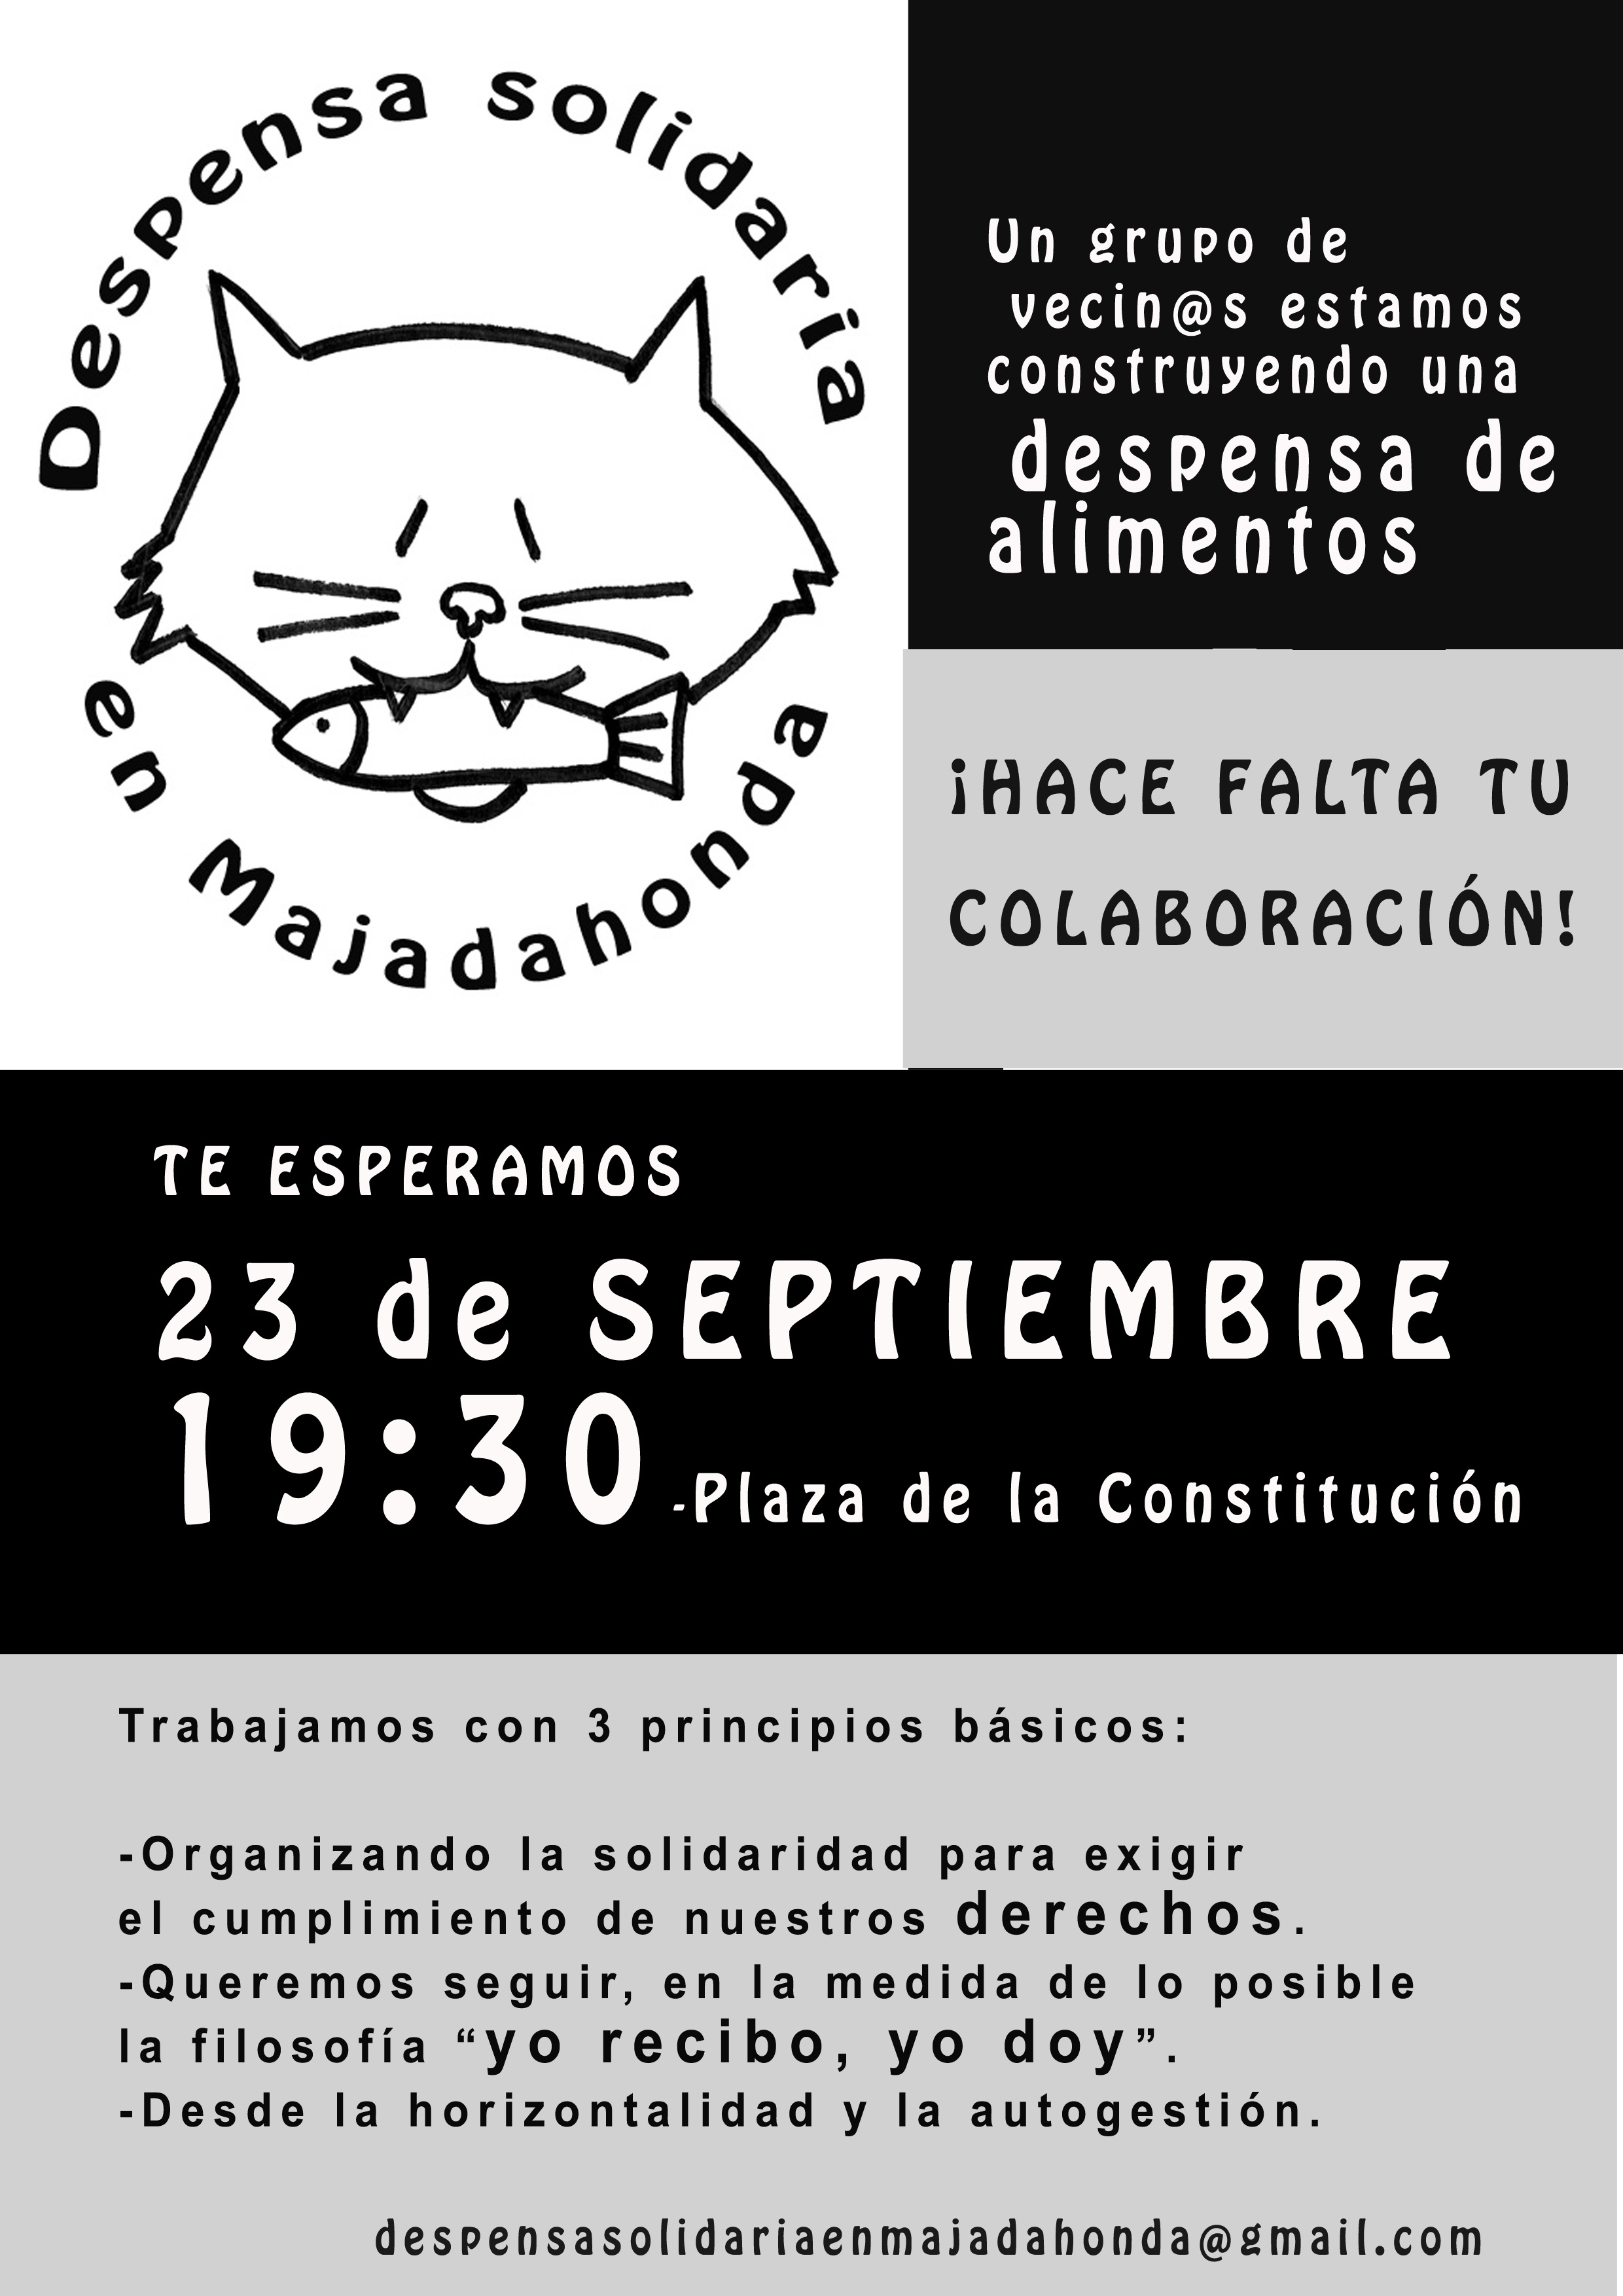 Cartel Despensa solidaria corto copia (1)